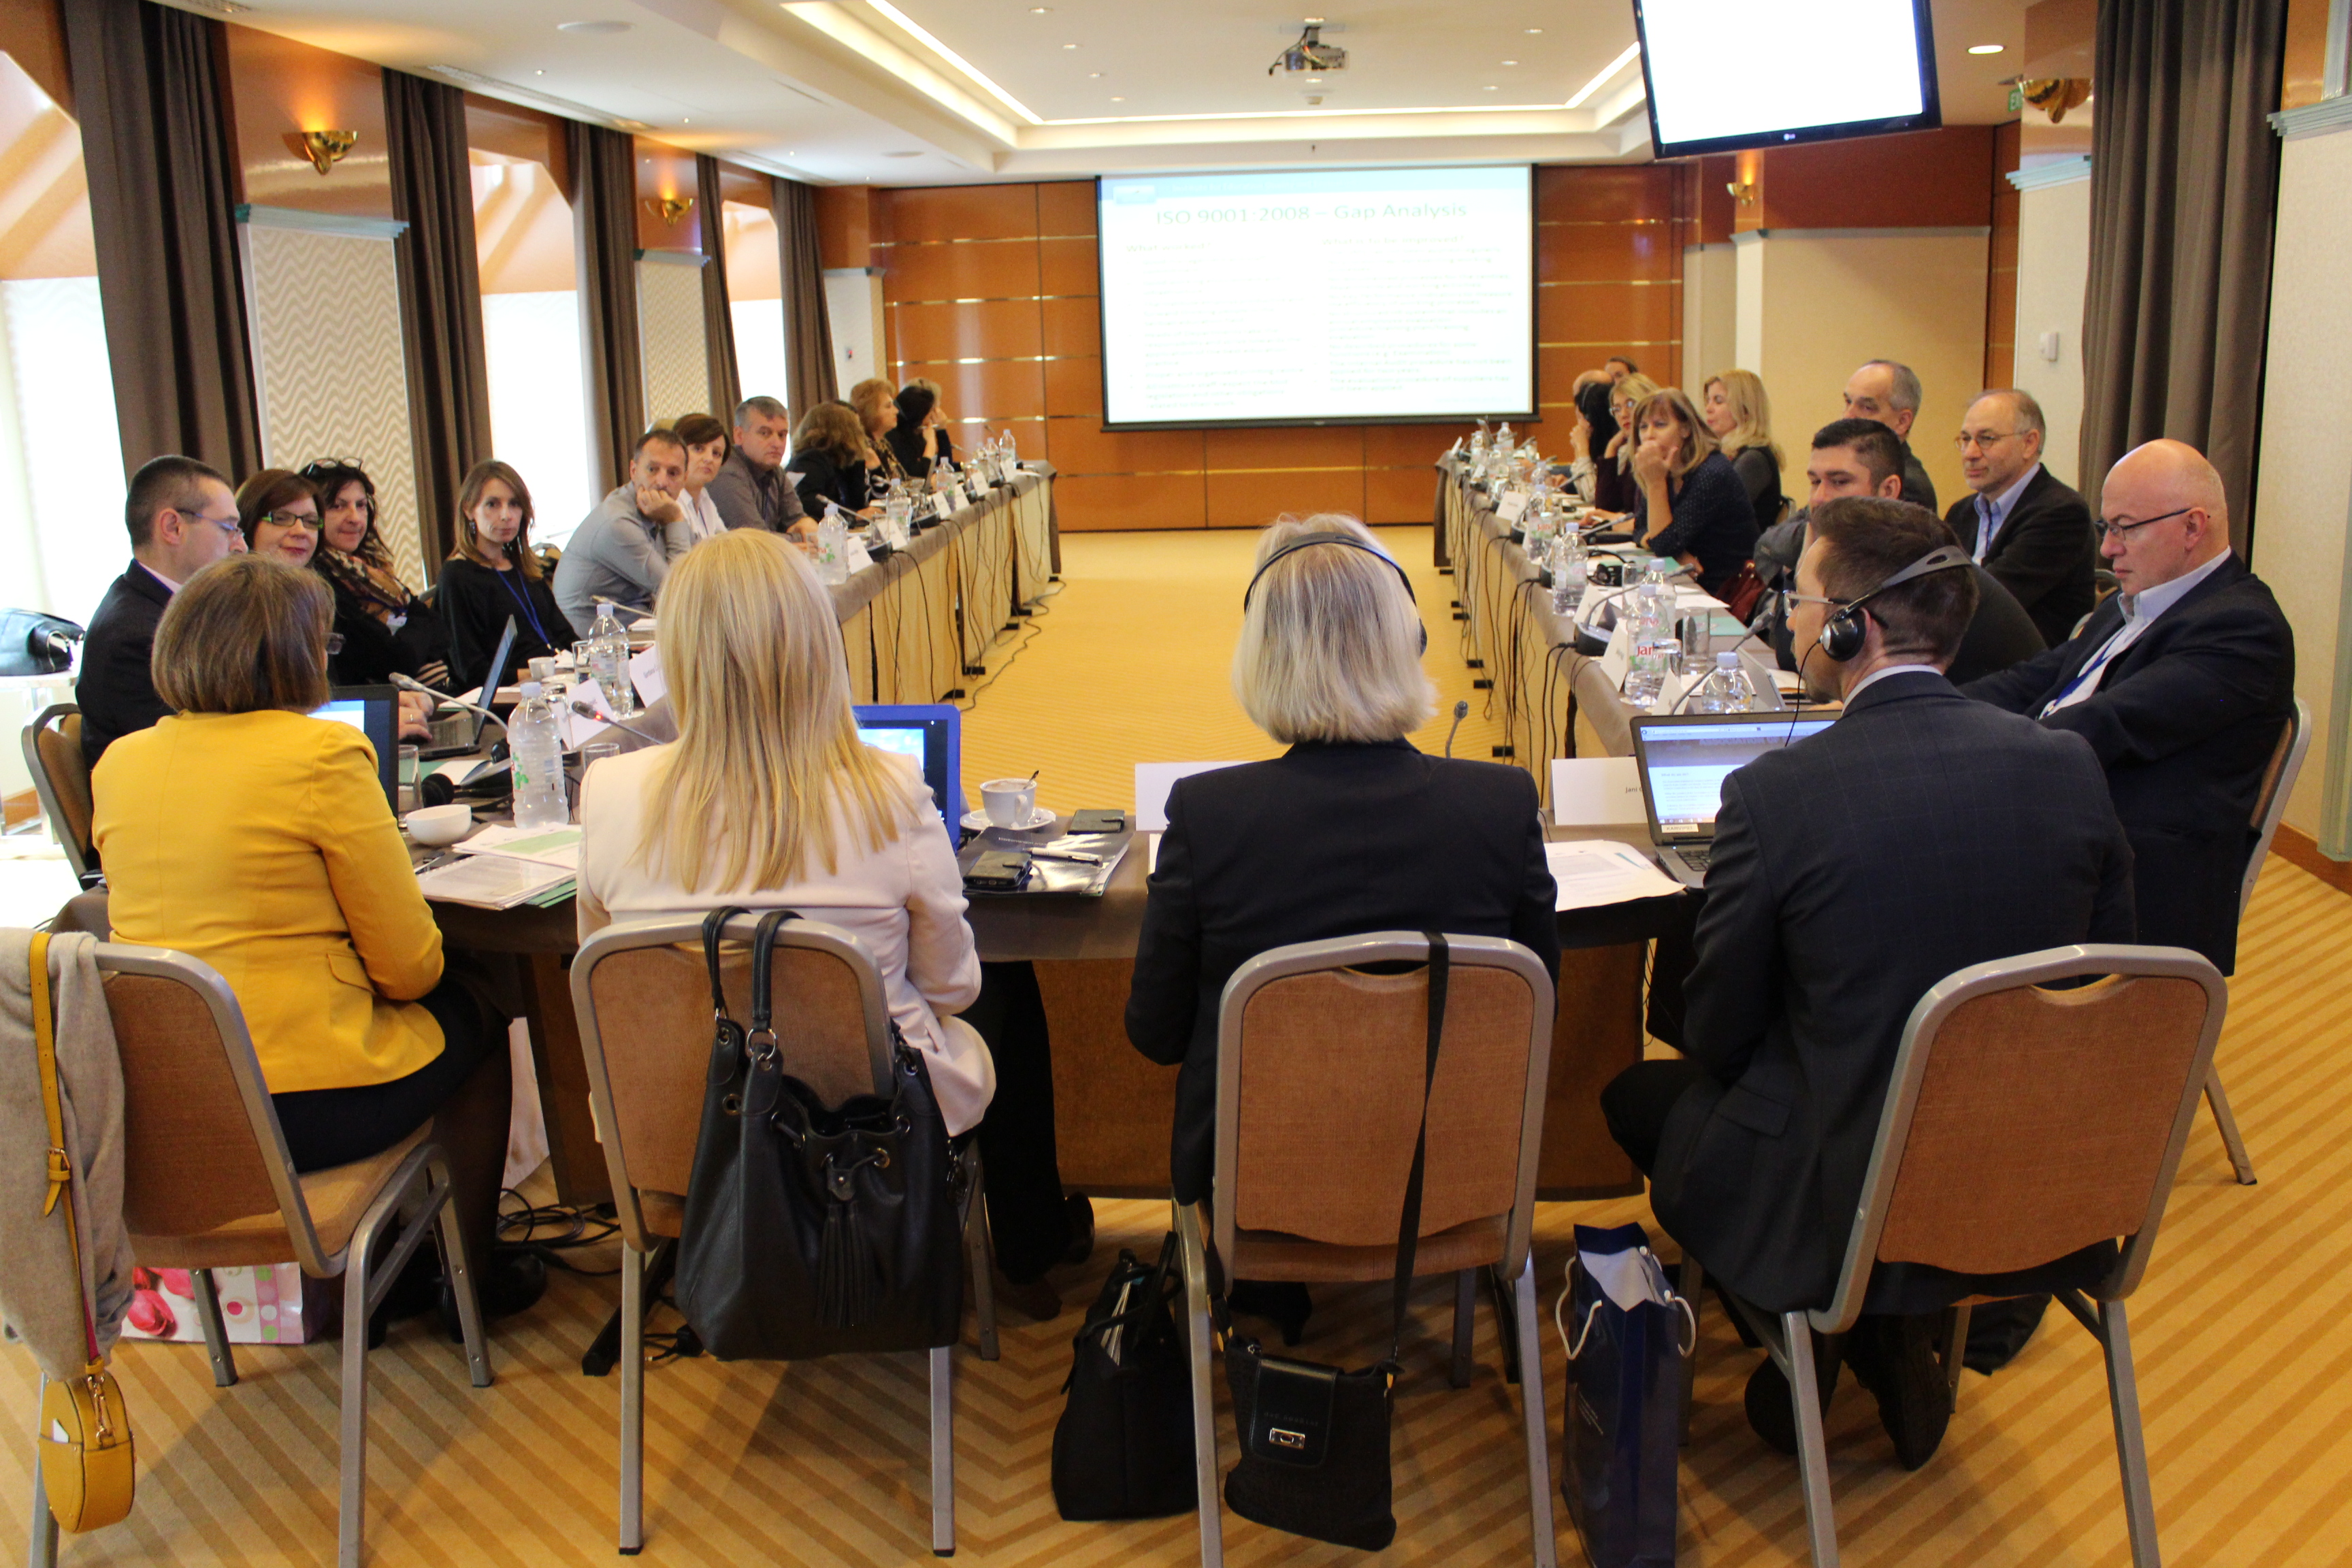 1st Regional Meeting Of Experts In Quality Assurance In General Education, 25th May 2017, Belgrade